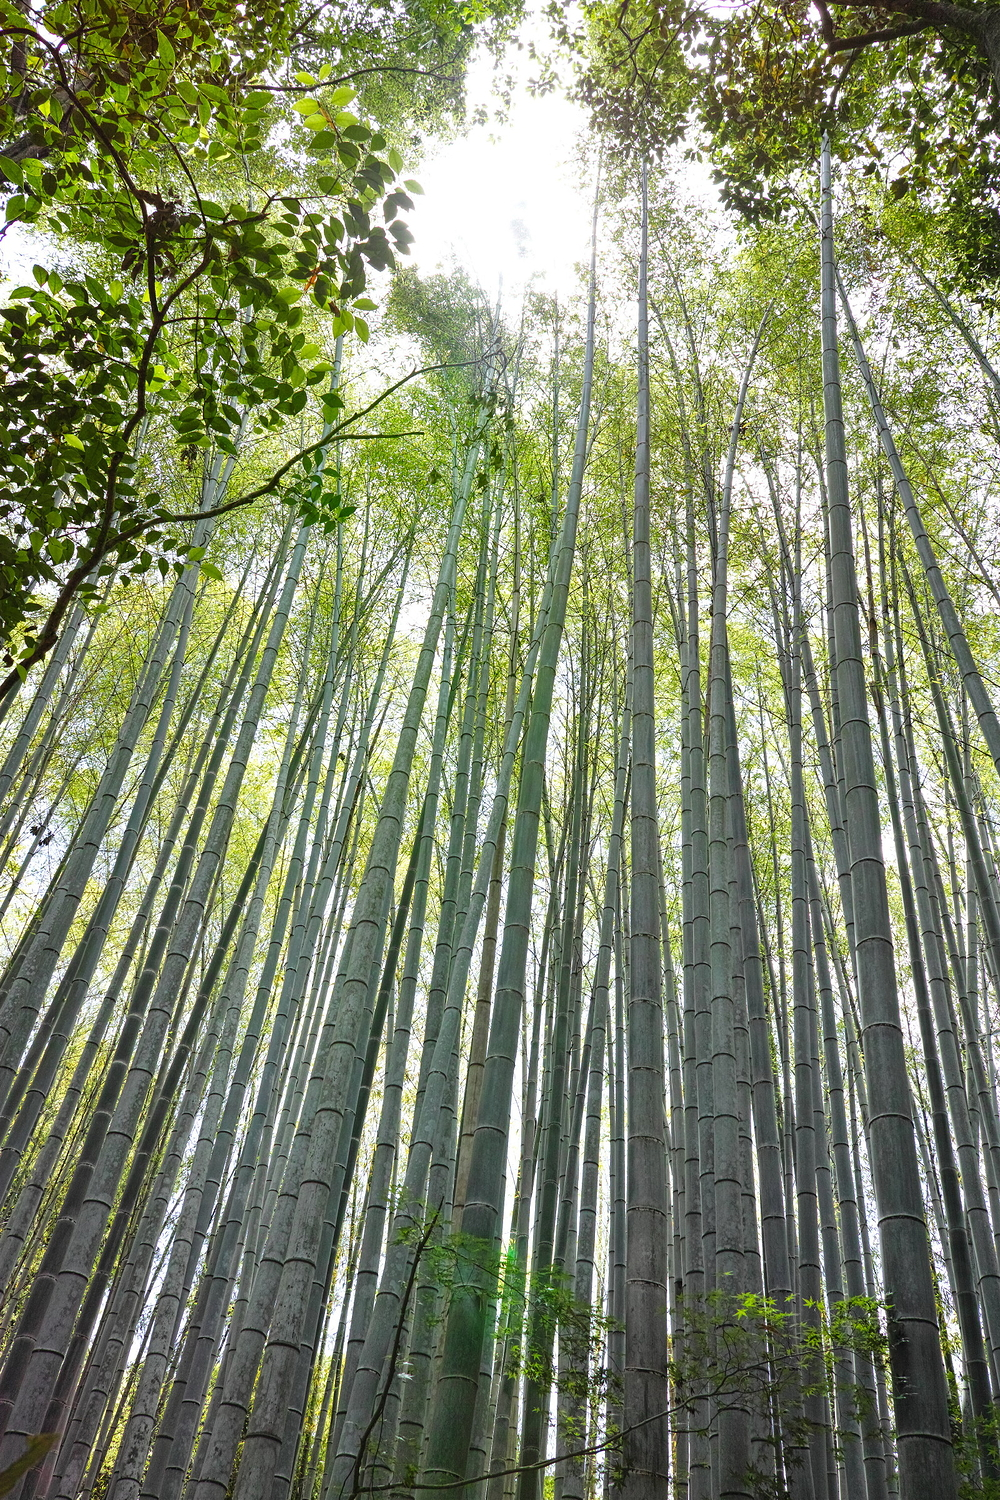 bamboo forest #4